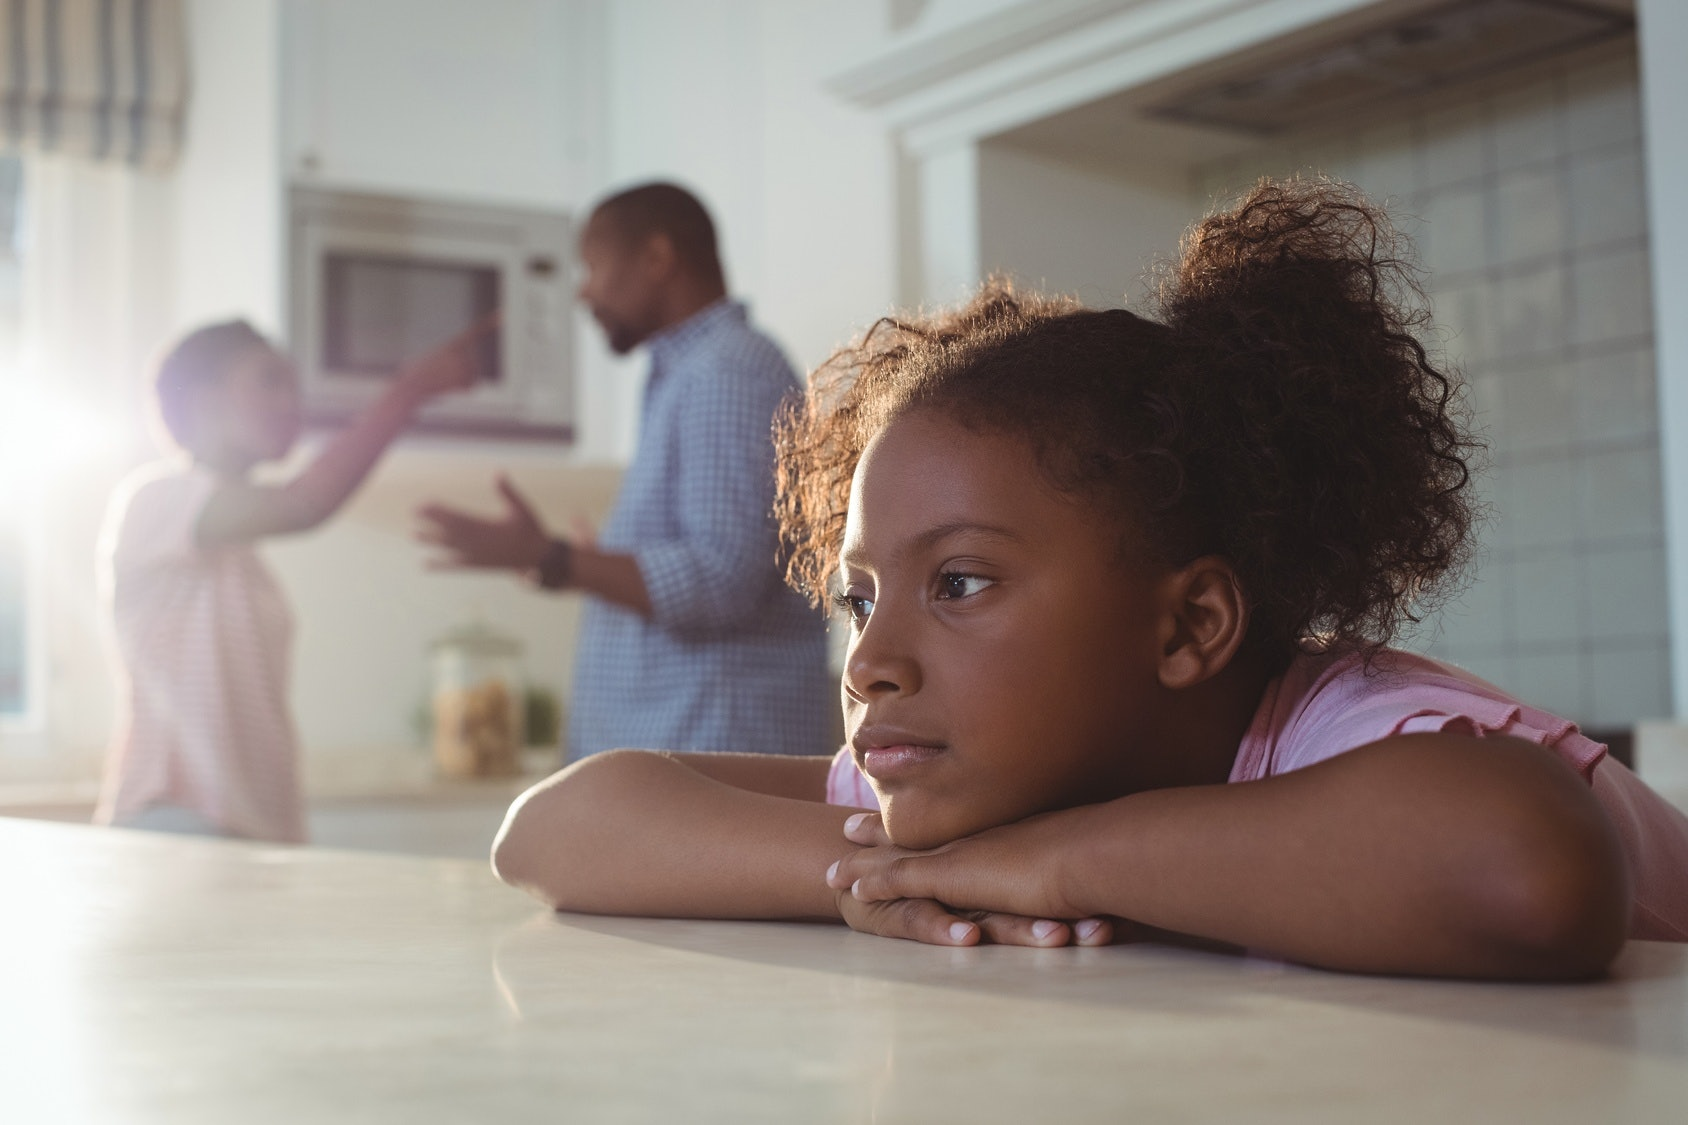 These 7 side effects of a parent's infidelity can cause trust issues in adult children.